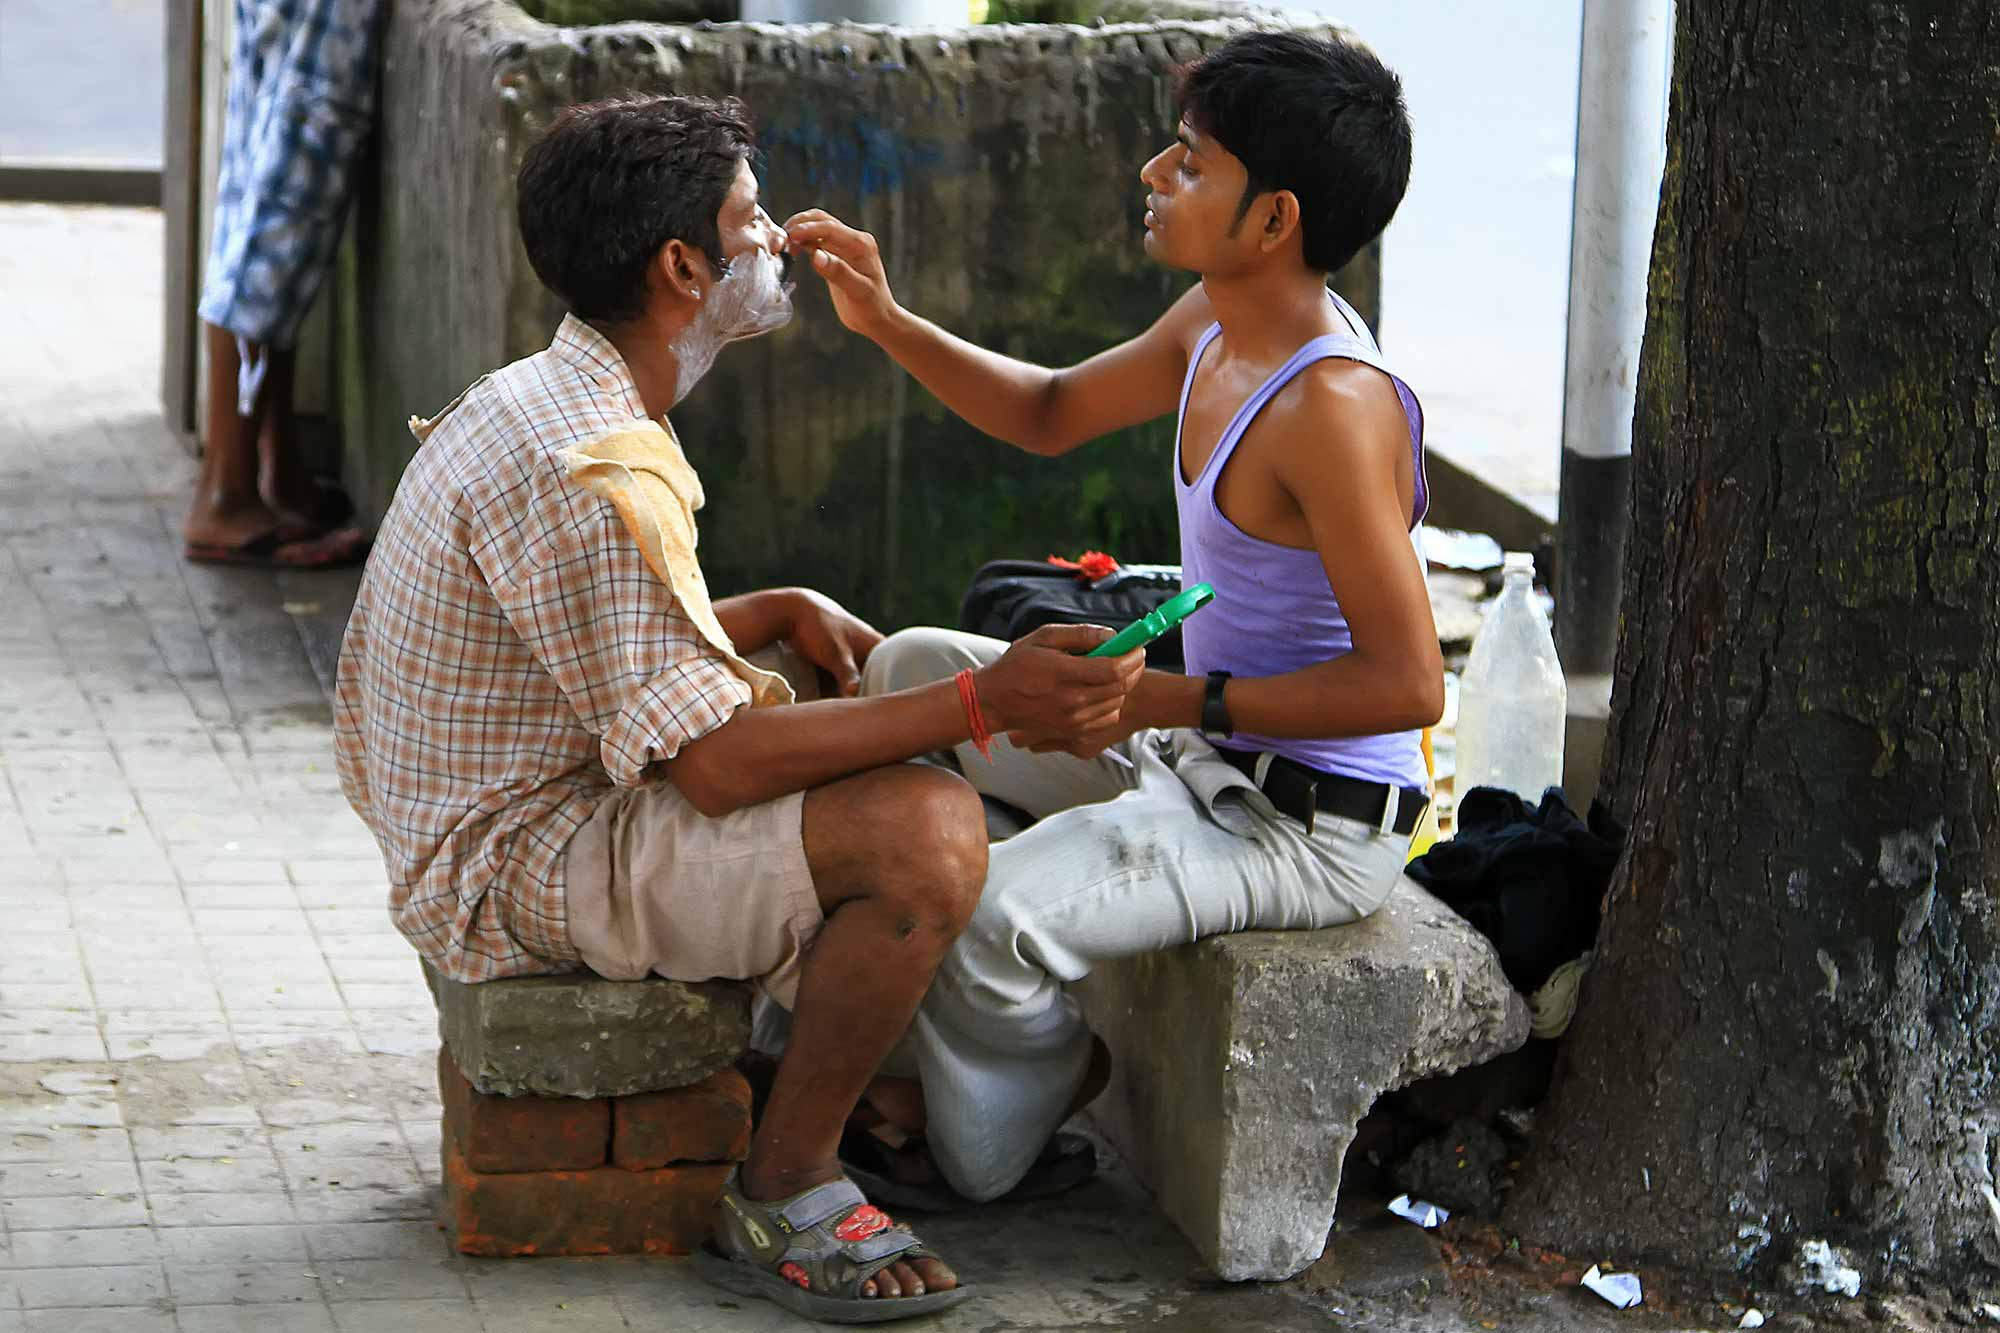 barber-shop-street-kolkata-india-1